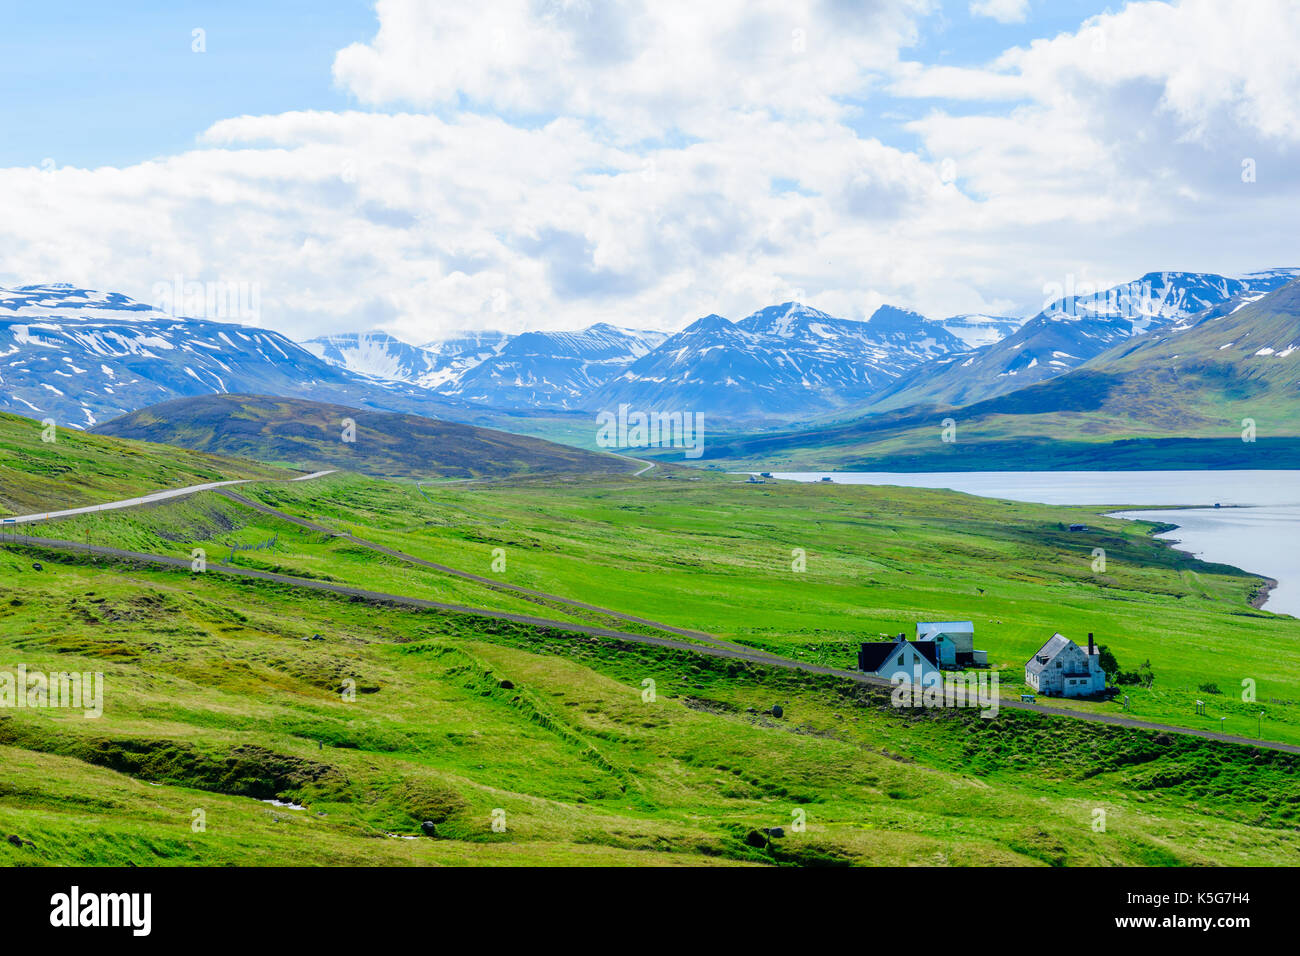 View of countryside and the Miklavatn Lake, in Northern Iceland - Stock Image